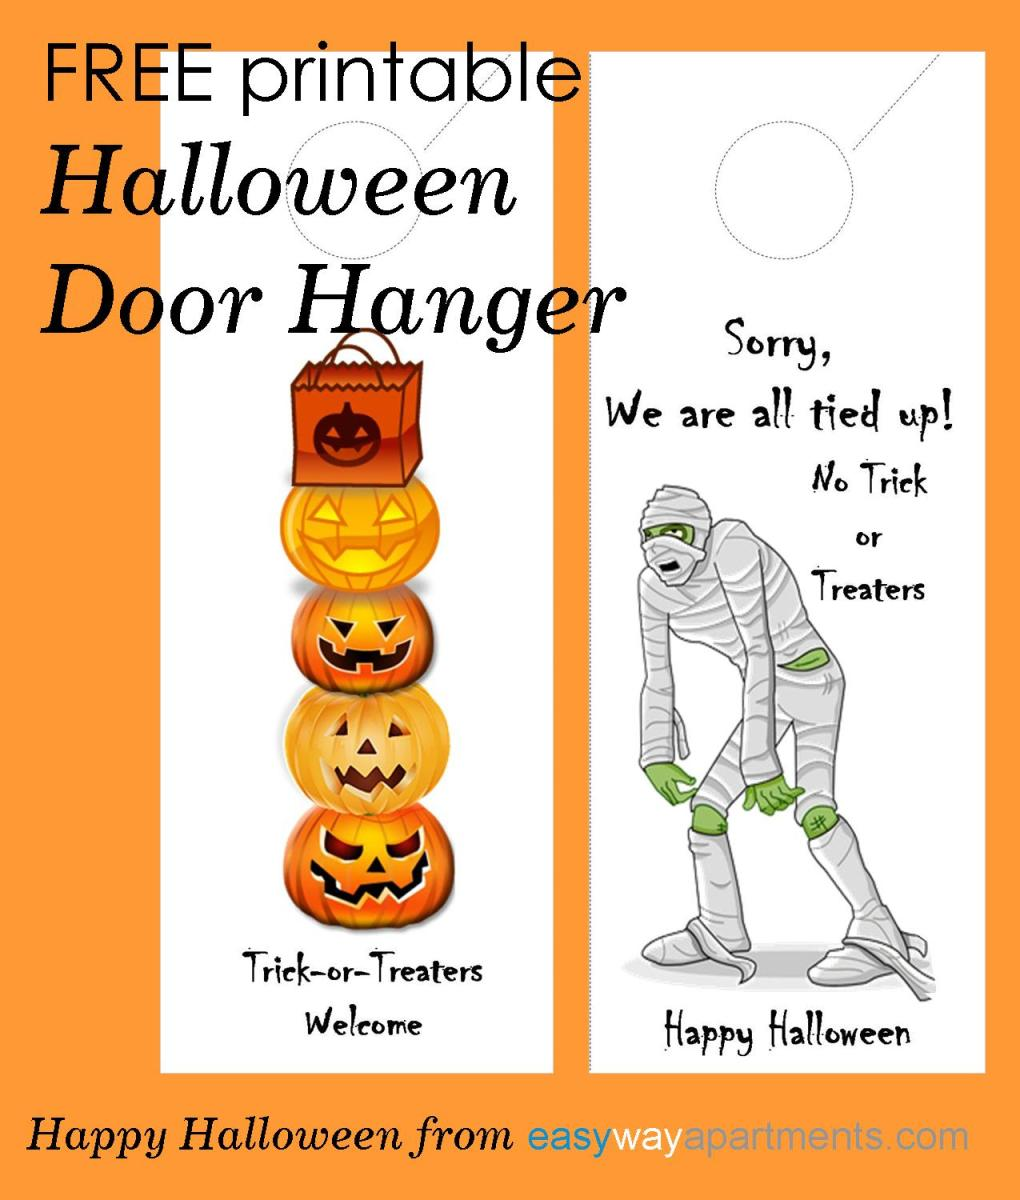 free printable halloween door hanger for your apartment